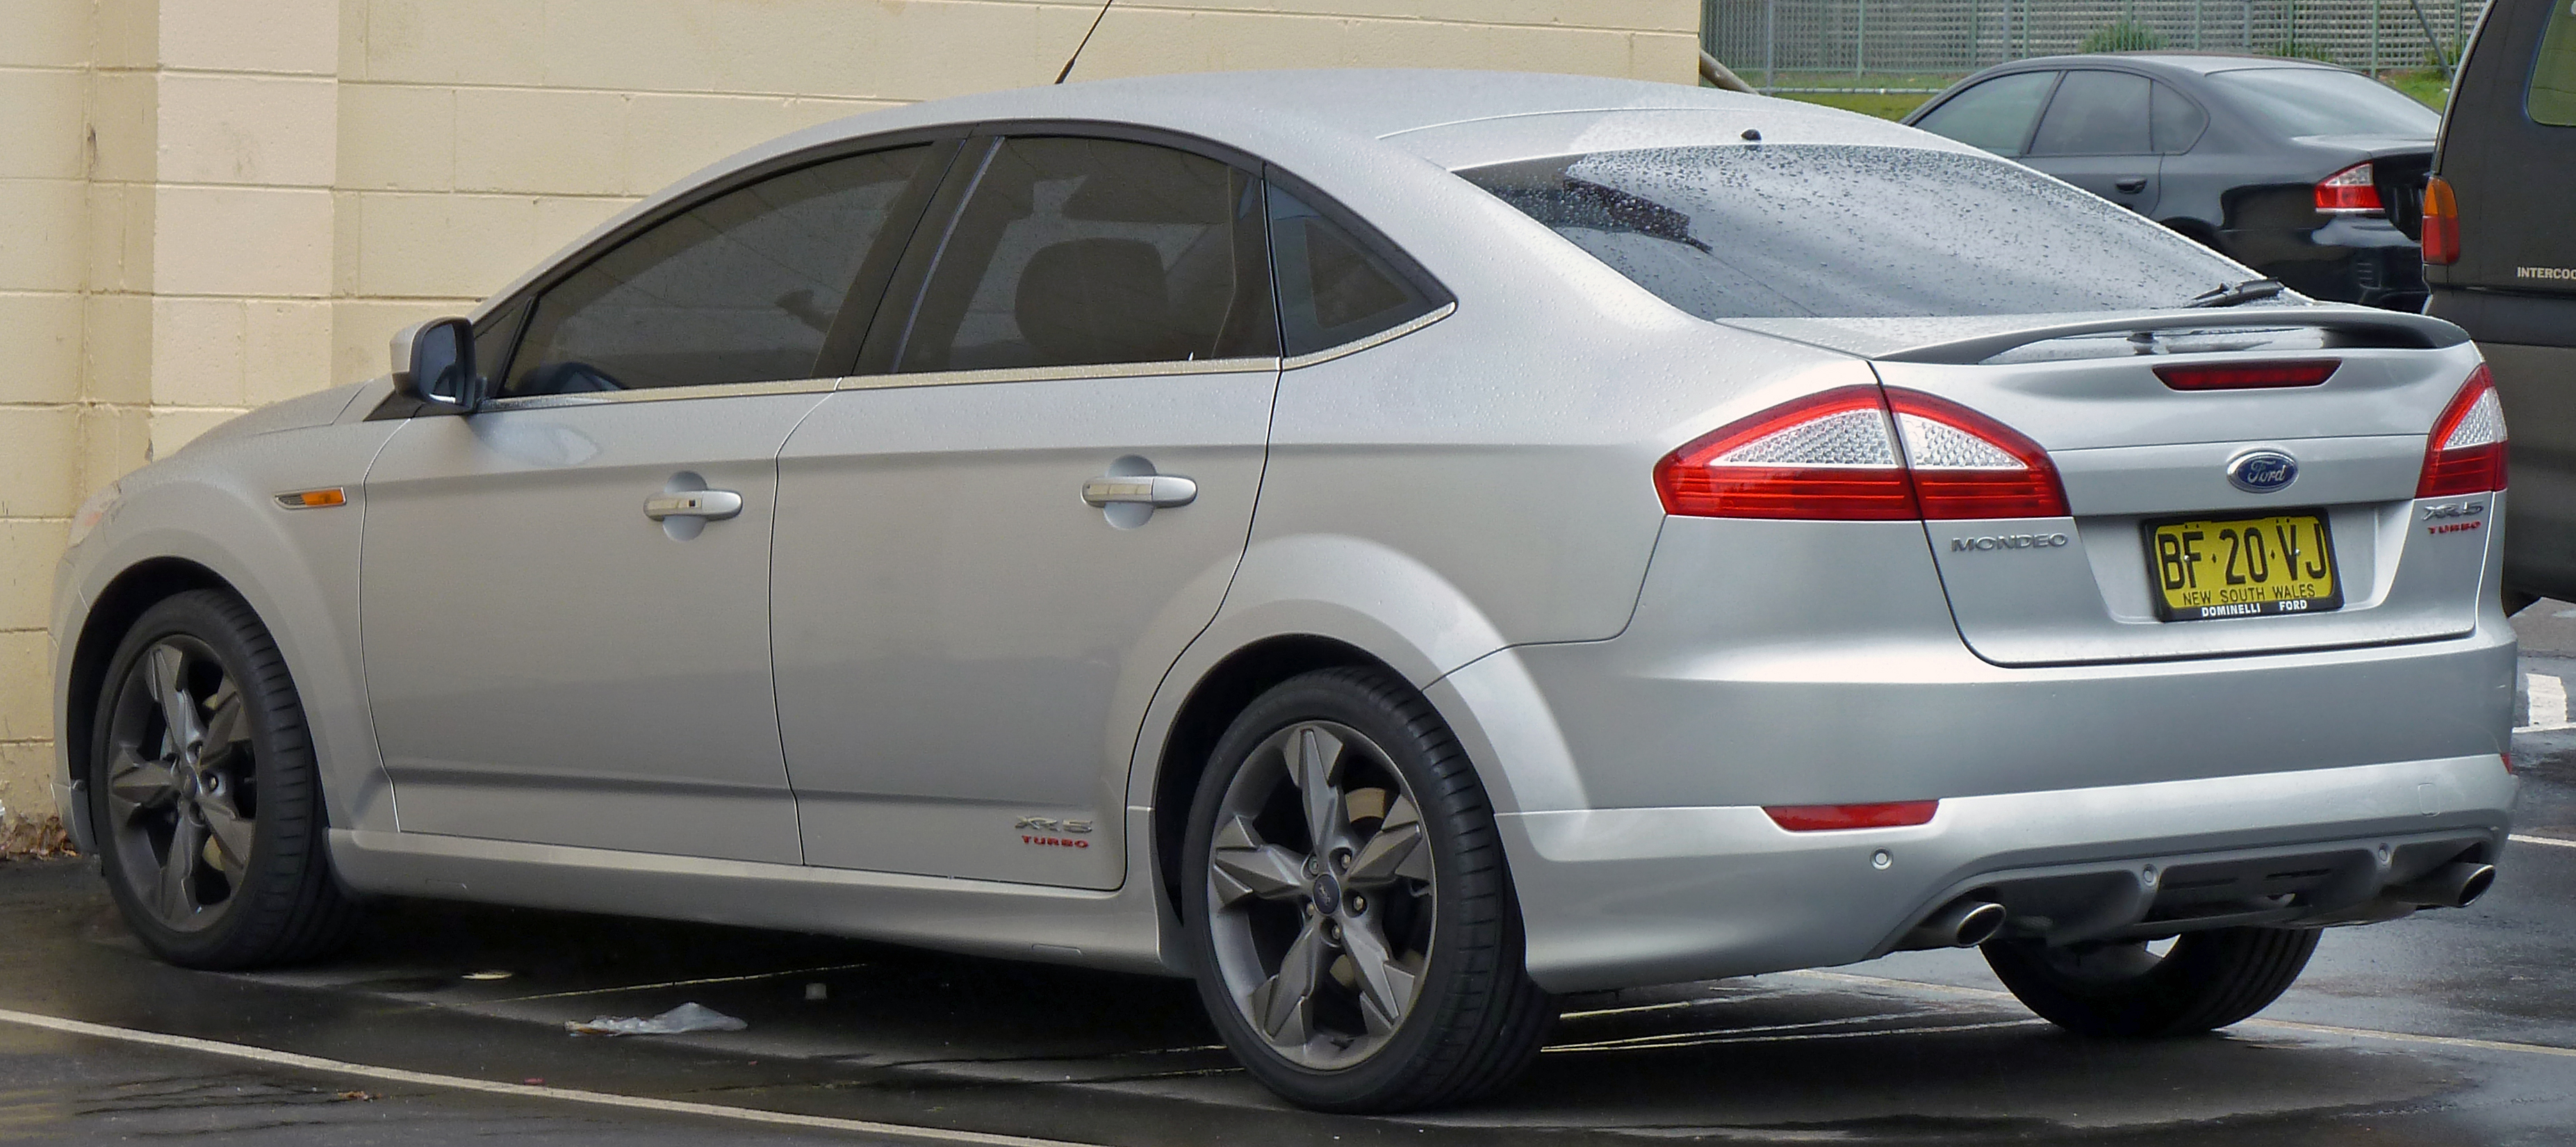 file 2009 2010 ford mondeo mb xr5 turbo hatchback wikimedia commons. Black Bedroom Furniture Sets. Home Design Ideas